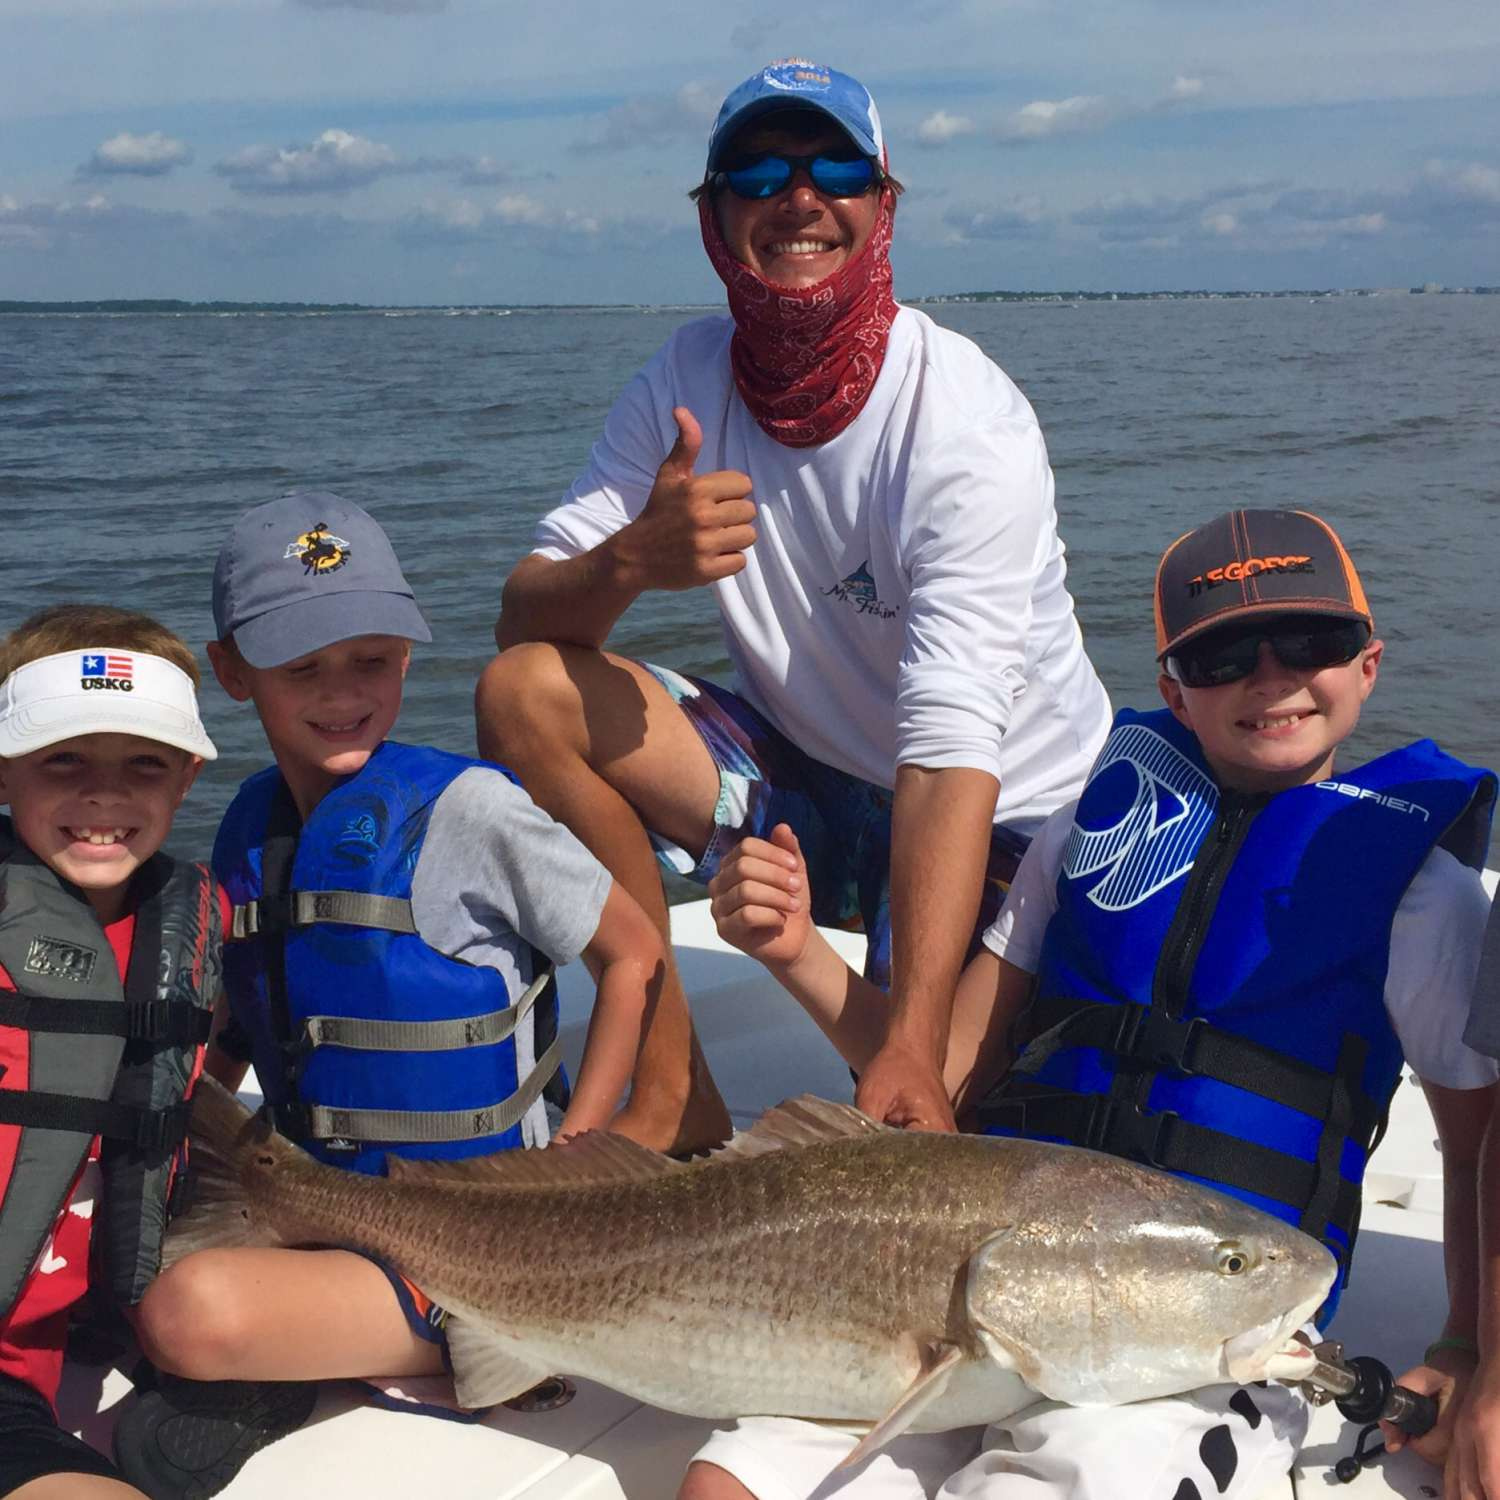 Title: Bro Time! - On board their Sportsman Masters 247 Bay Boat - Location: Johns Island, South Carolina. Participating in the Photo Contest #SportsmanNovember2015